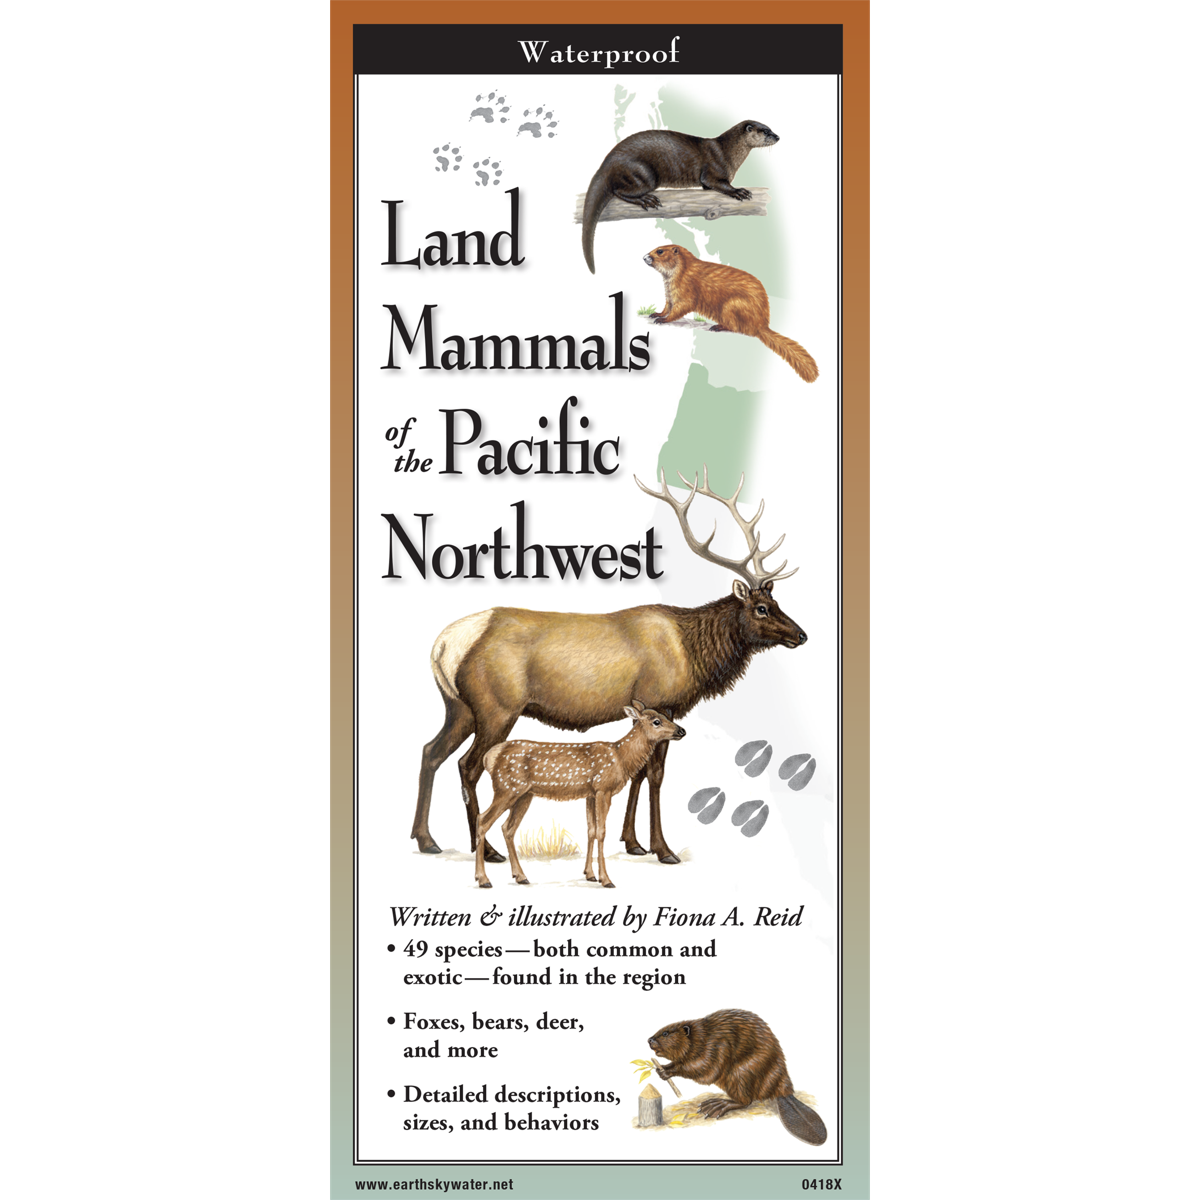 Land Mammals of the Pacific Northwest